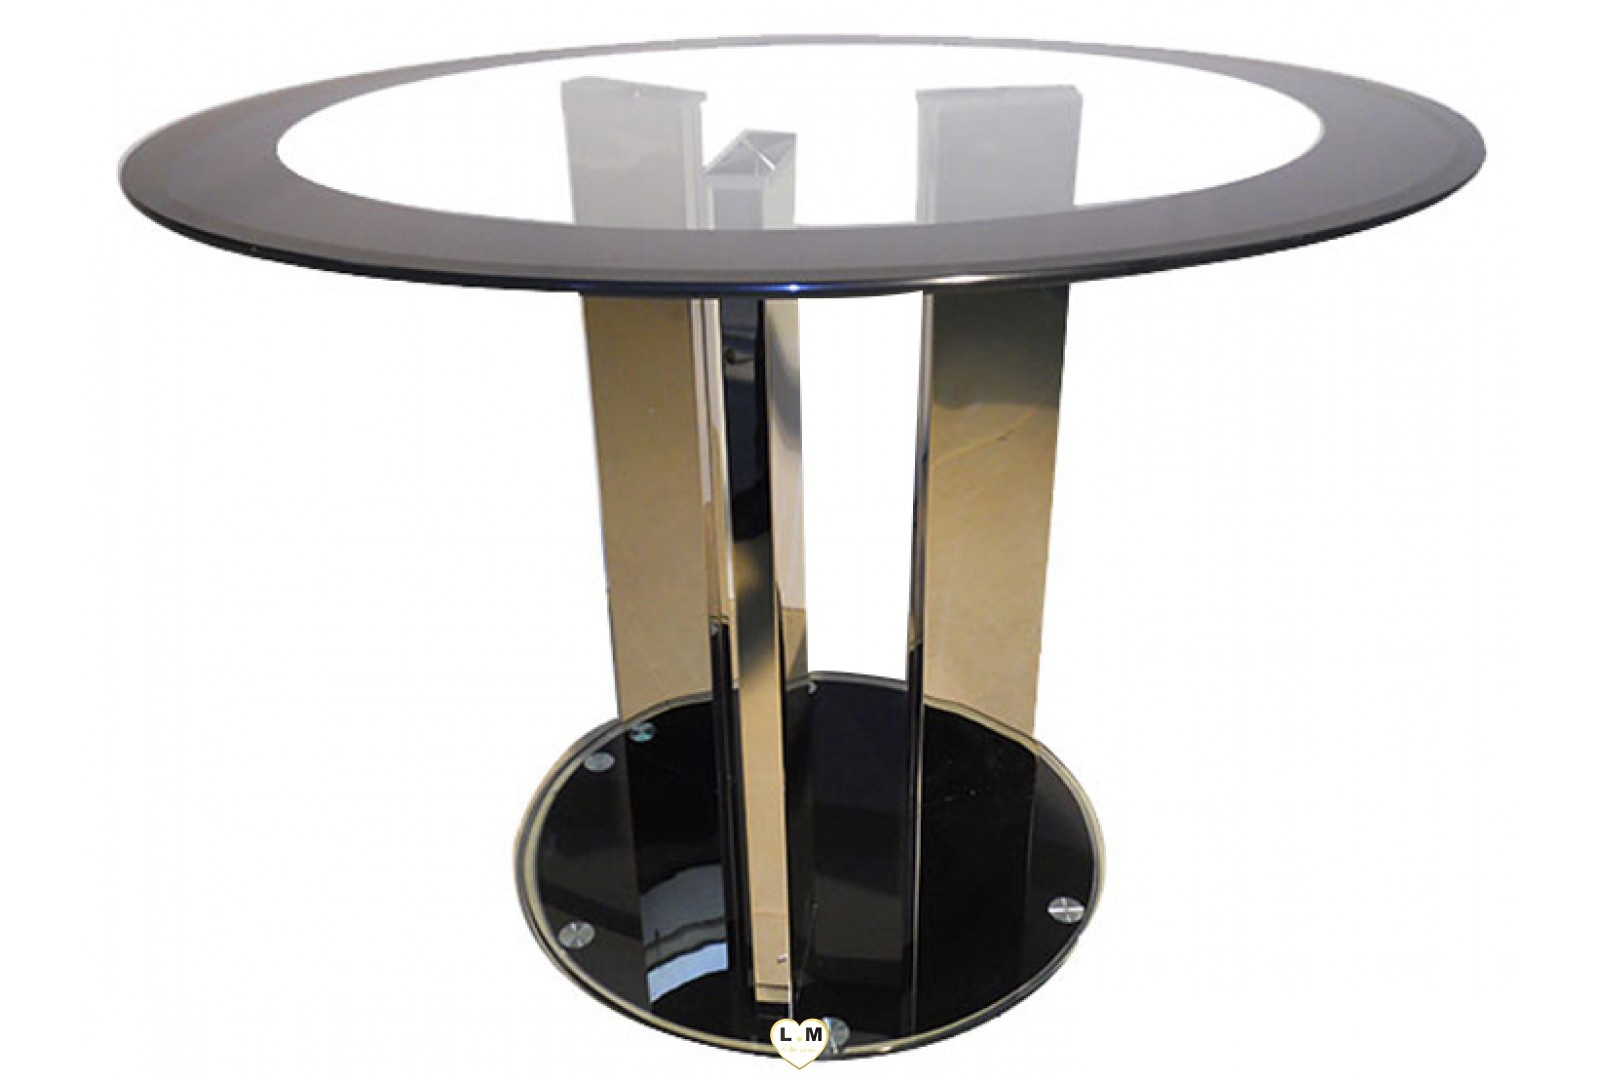 T887 table salle a manger ronde verre transparent for Table de salle a manger ronde